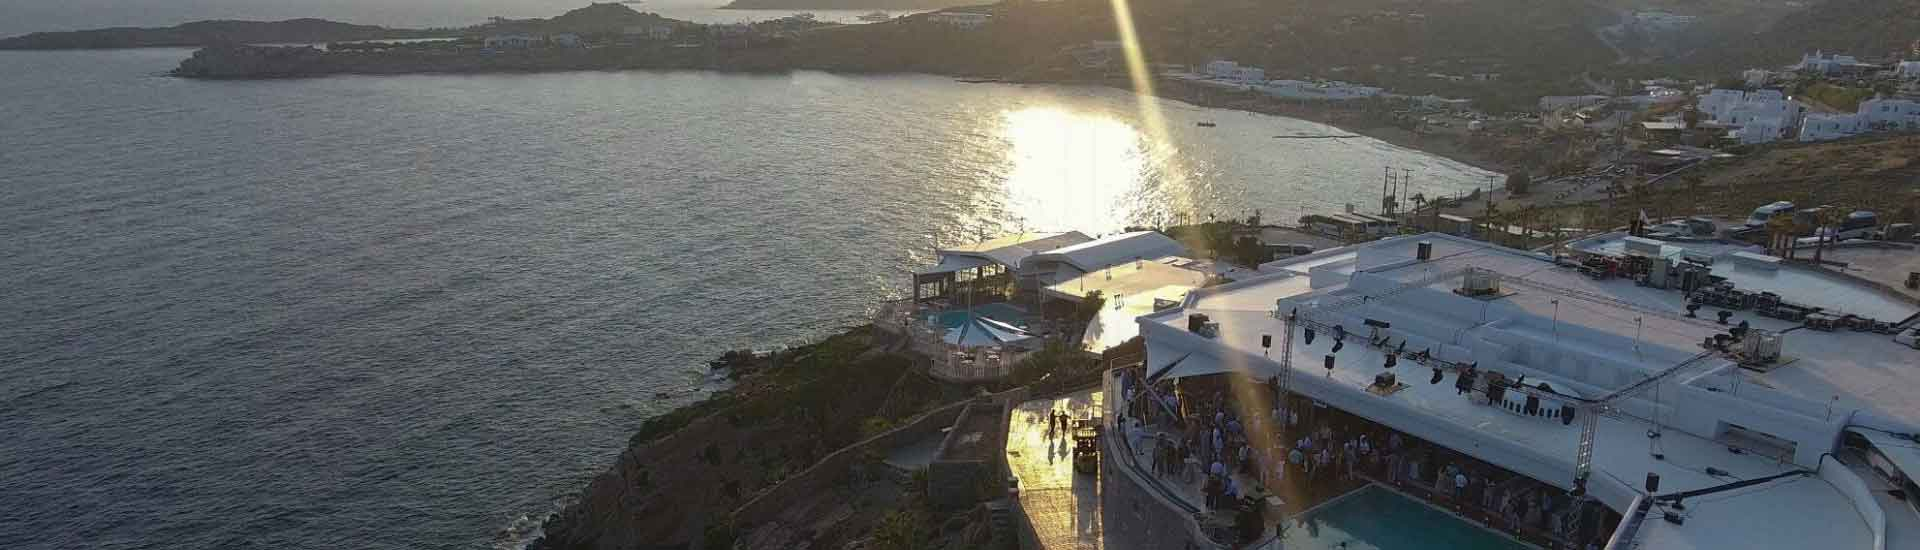 zenit events mykonos private parties